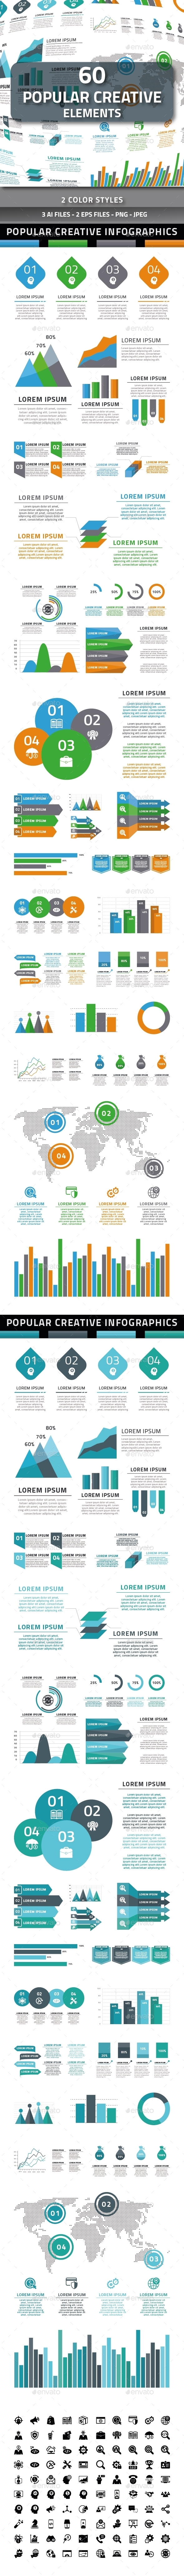 Popular Creative Elements - Infographics